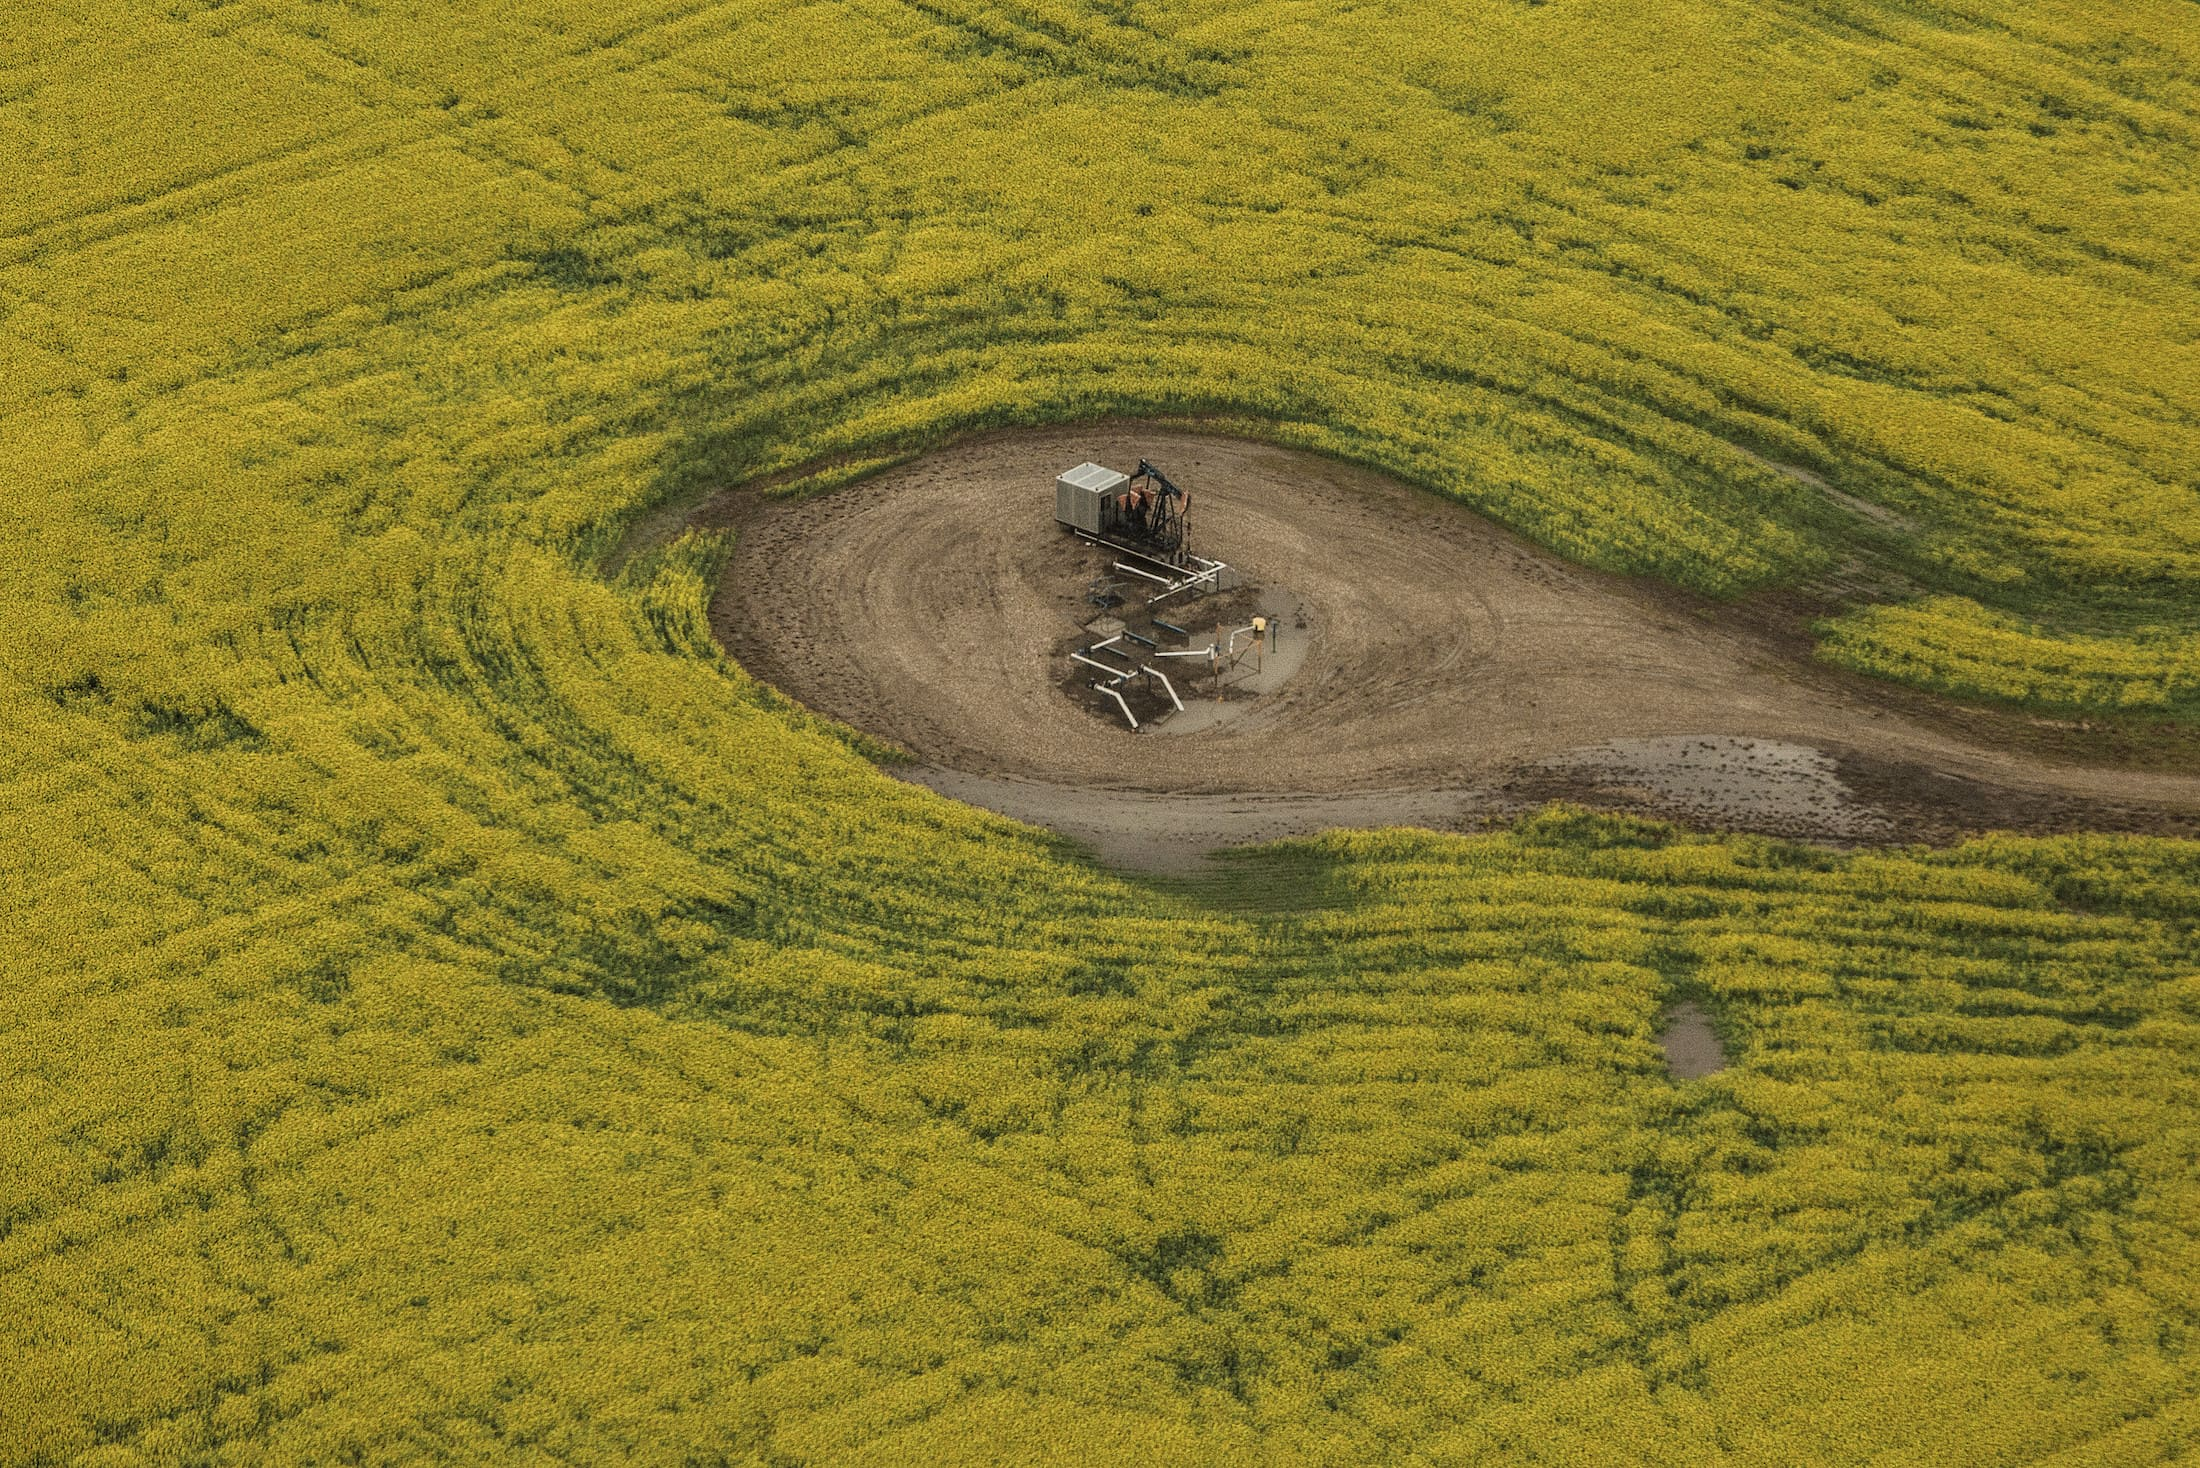 aerial view of yellow field with oil and gas infrastructure